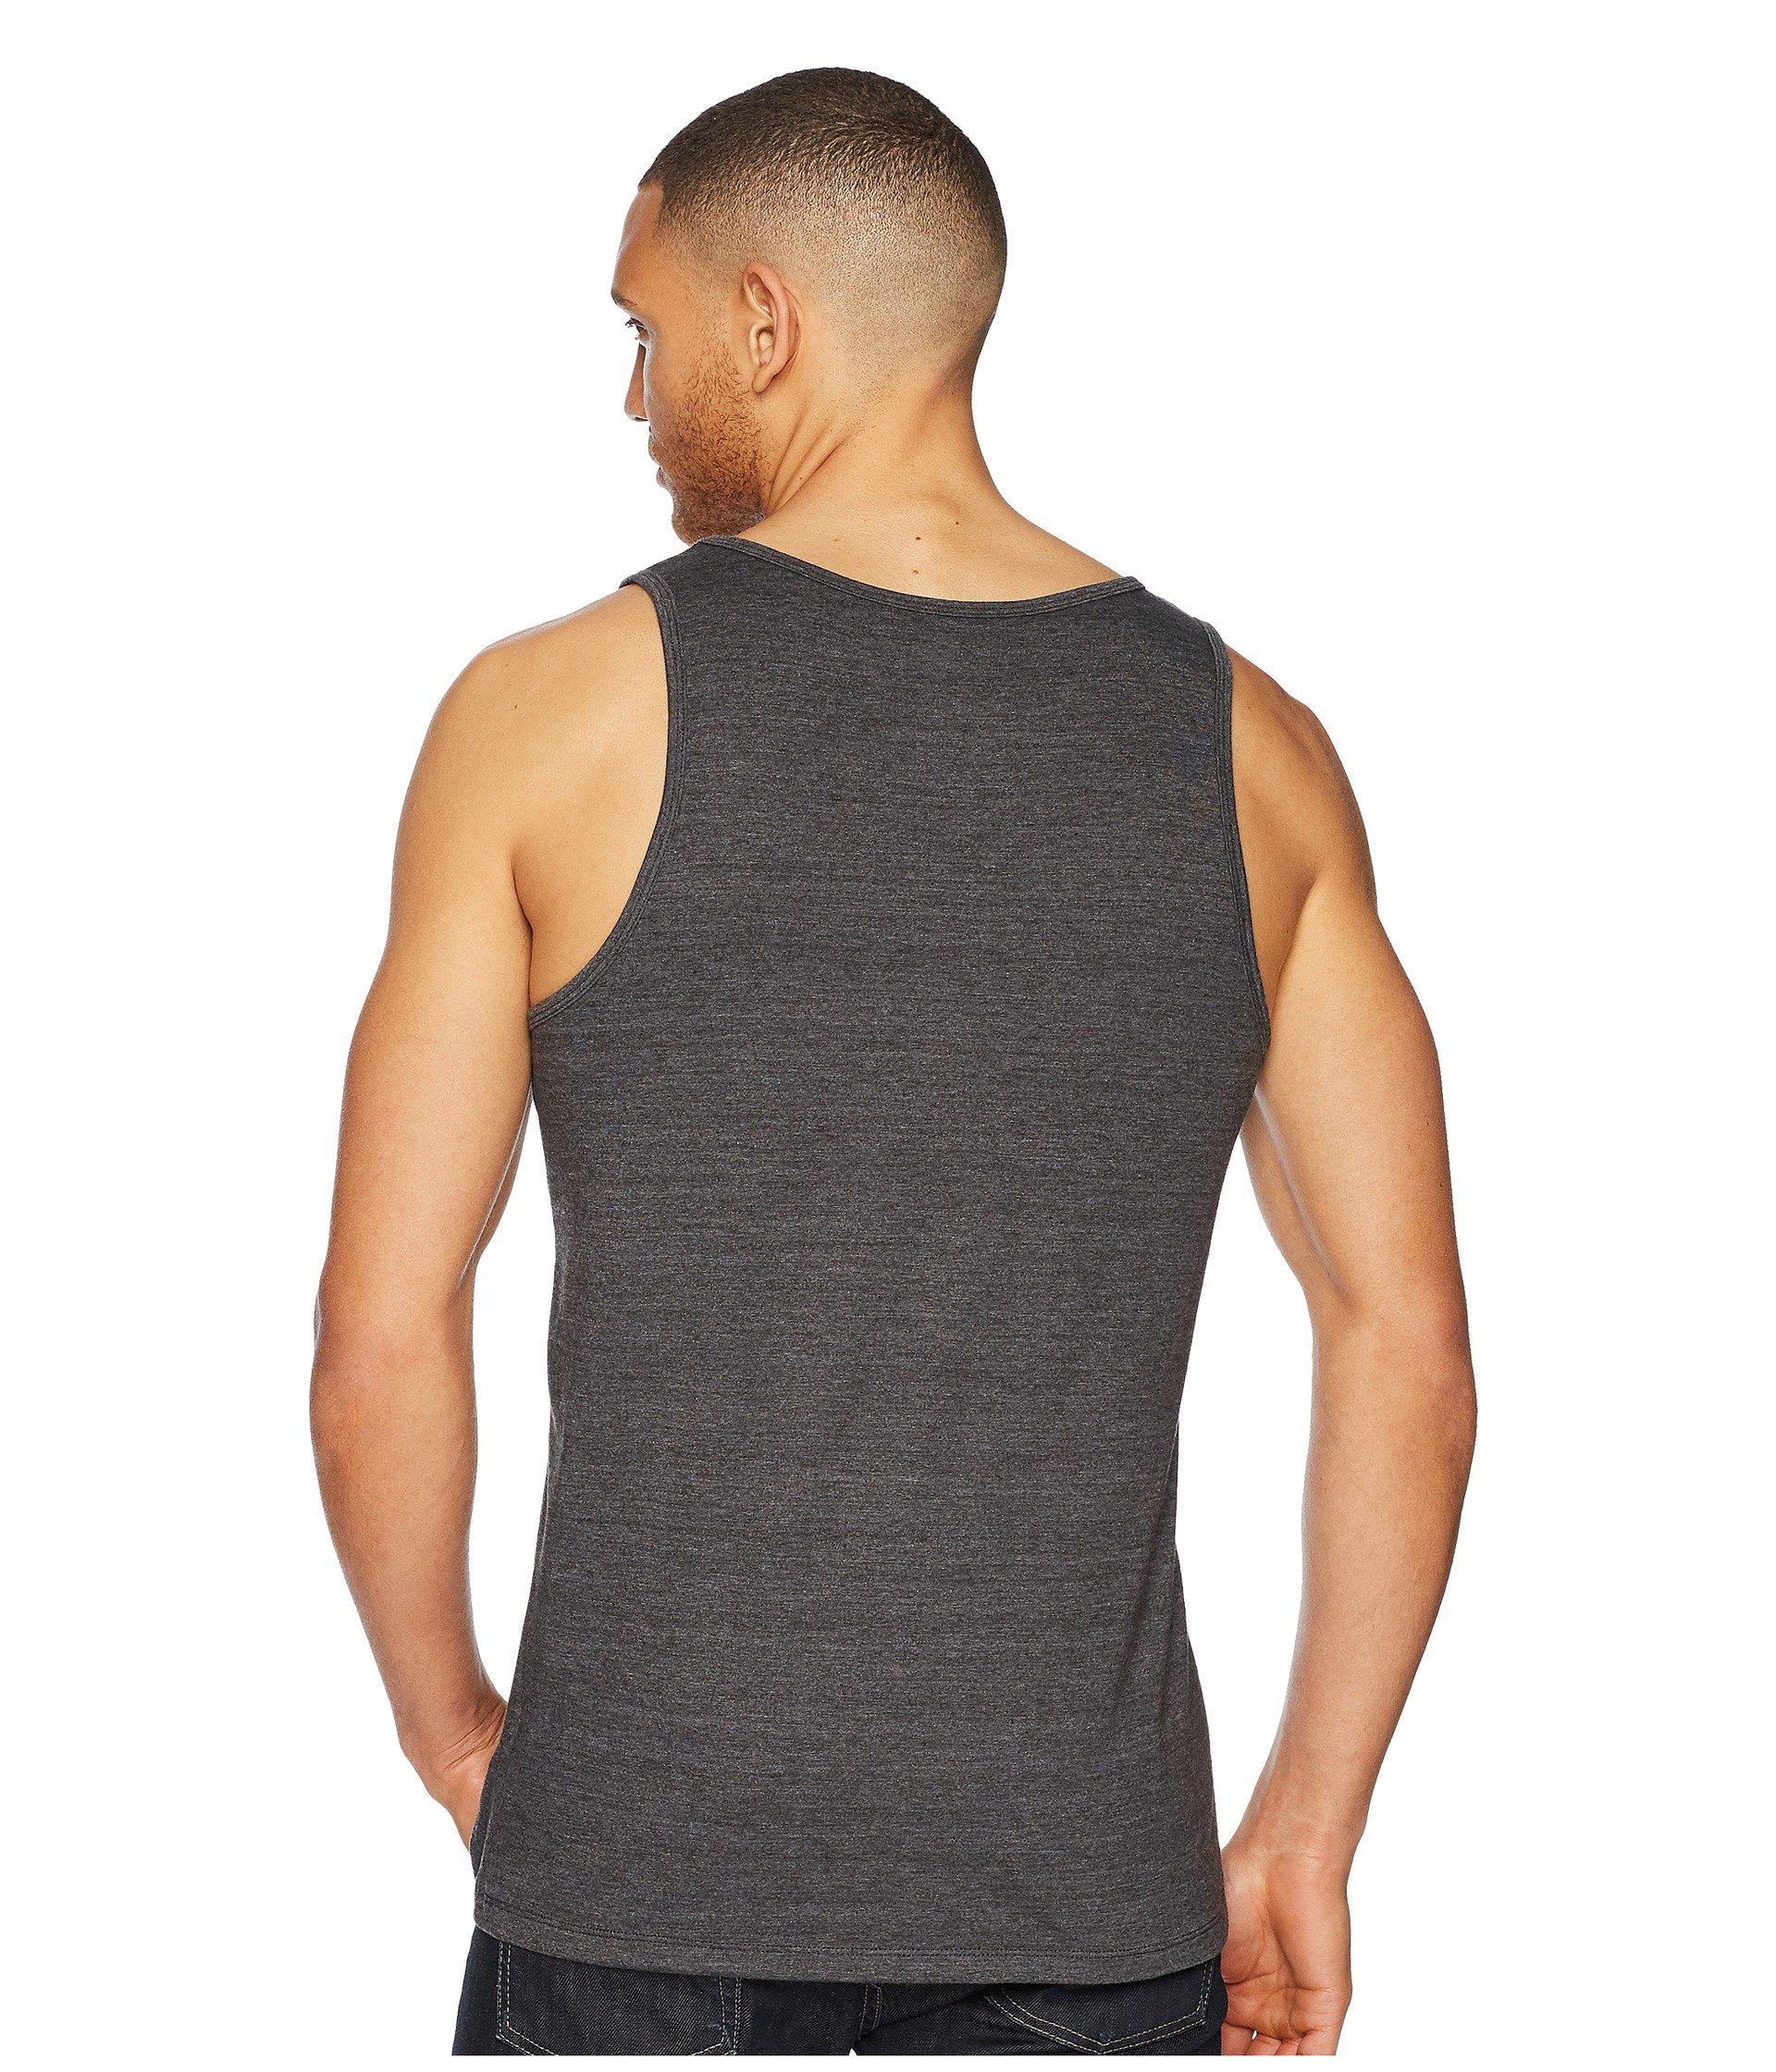 e19f752642cdeb Lyst - The North Face Mountain Tri-blend Tank Top in Gray for Men